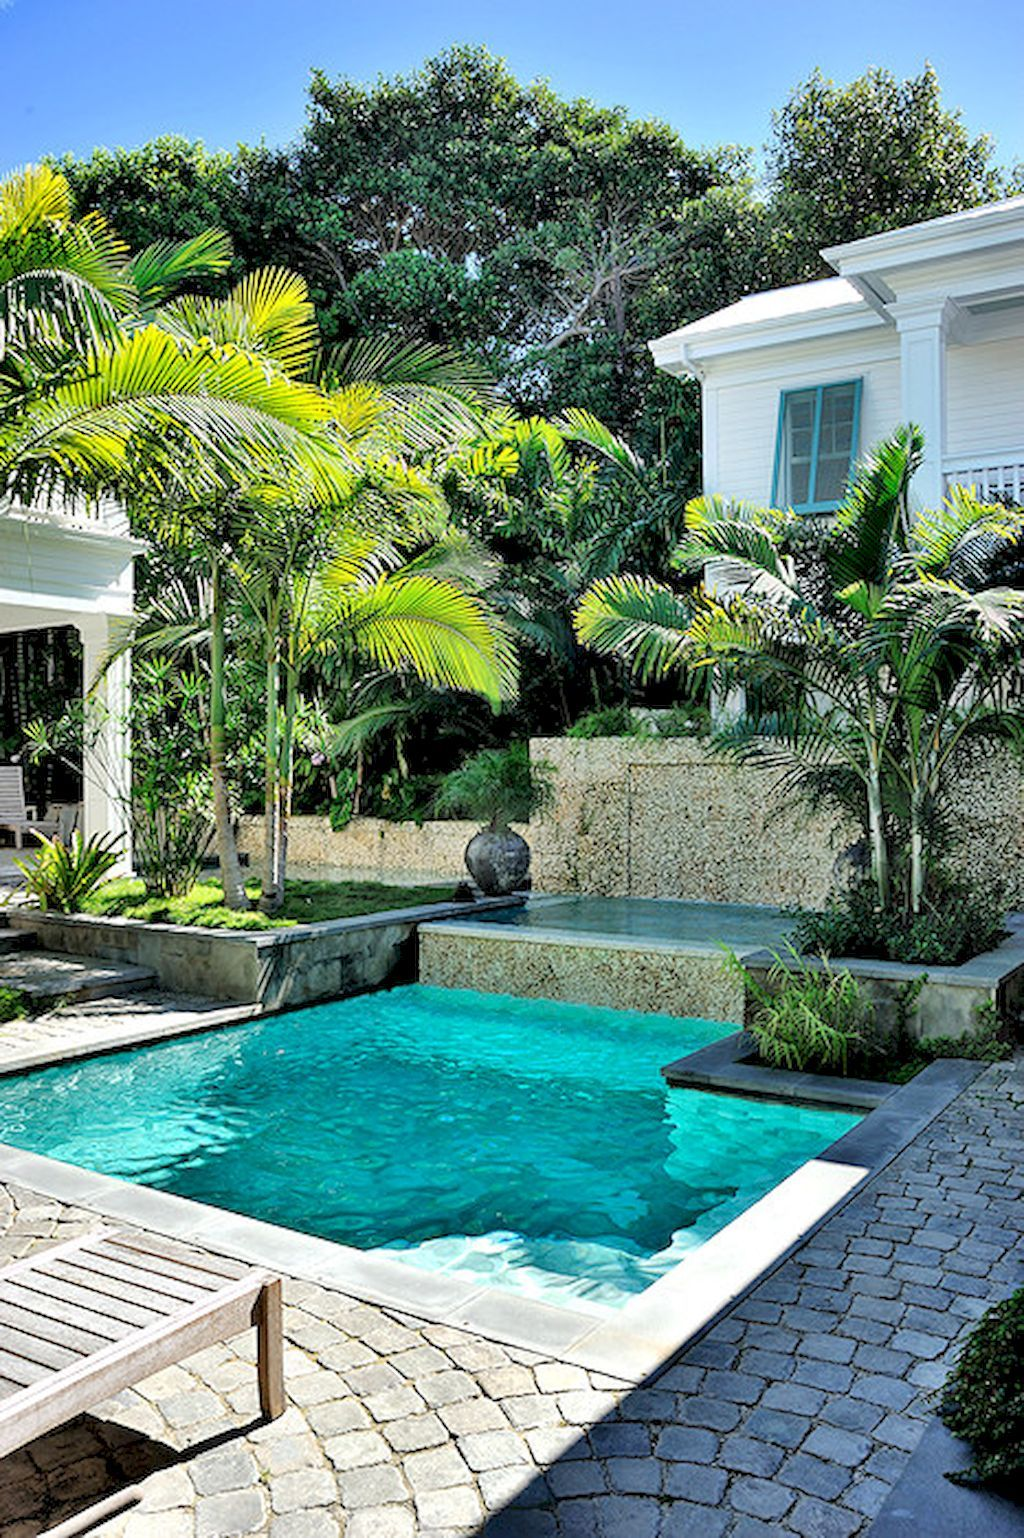 Luxurious Backyard Retreats - luxury outdoor living spaces - pool design ideas - luxurious pools